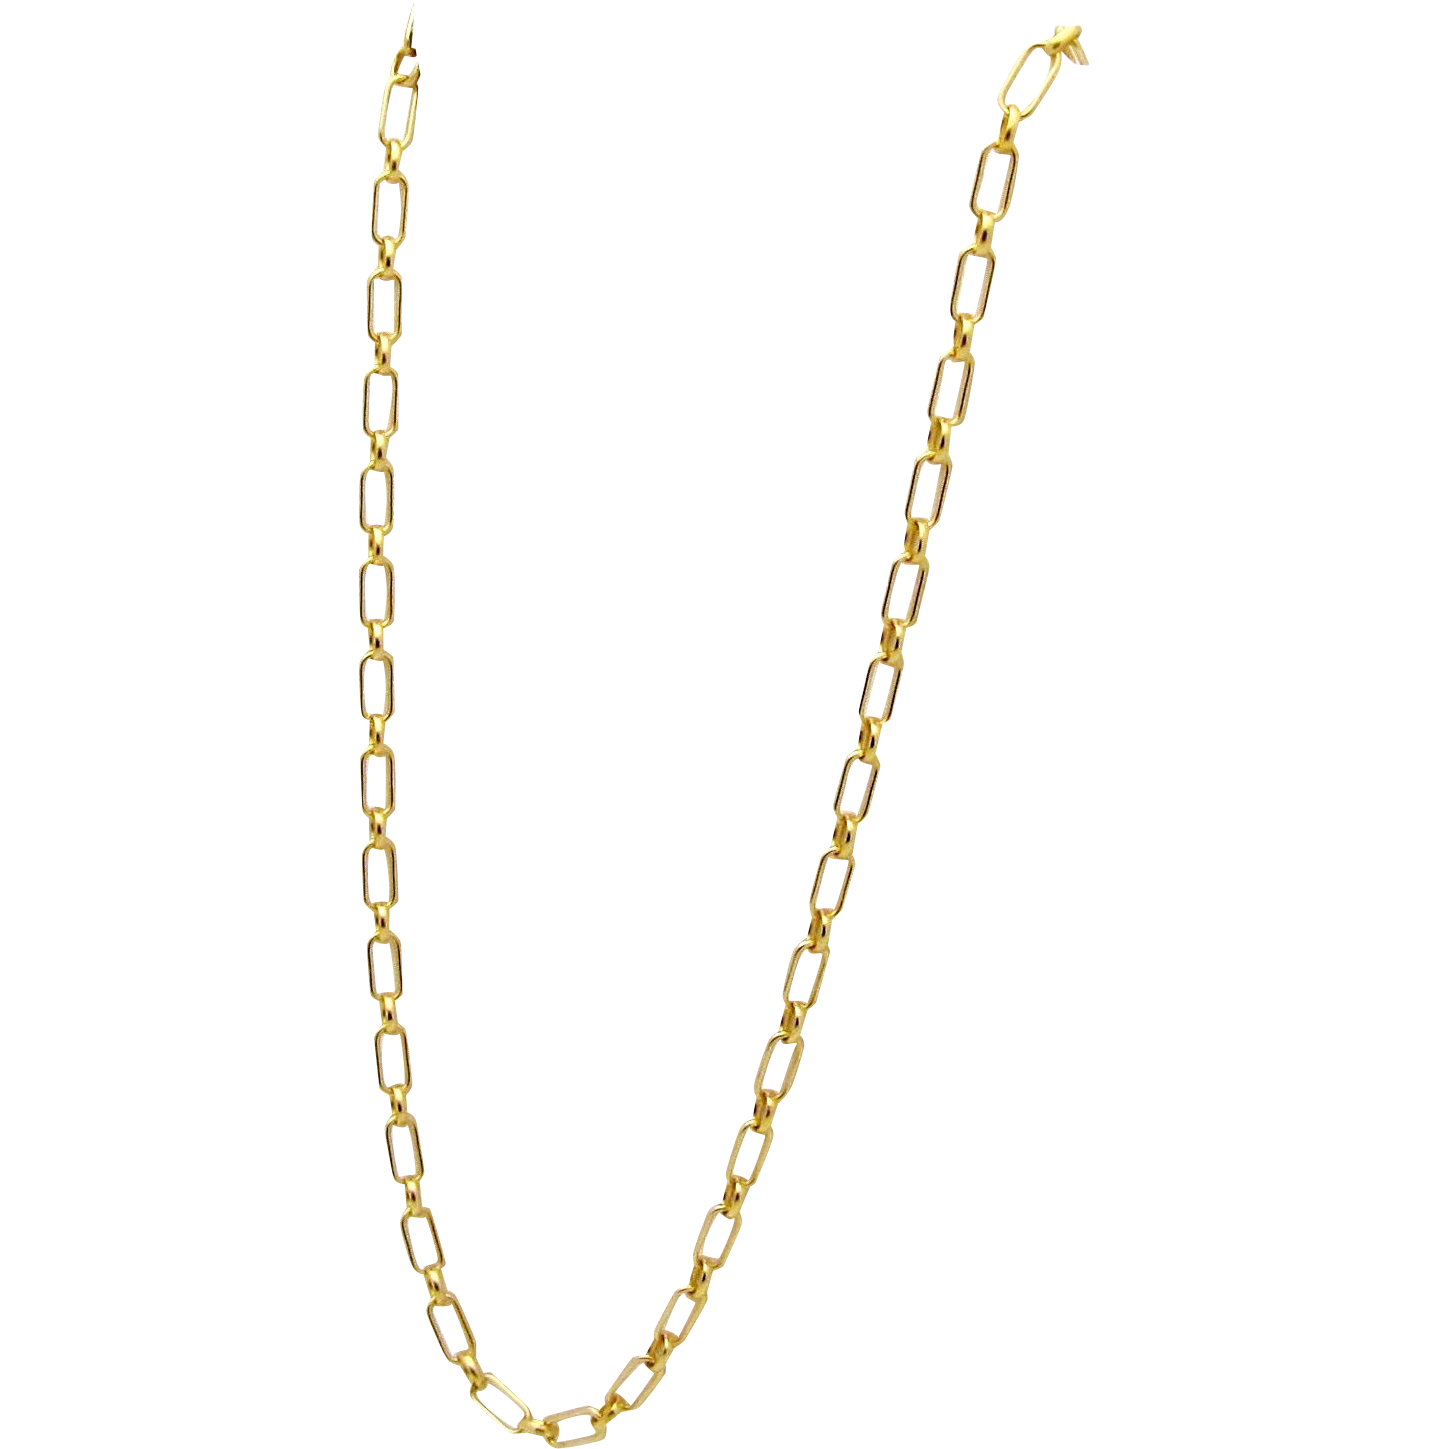 lyst product in gold mija metallic link necklace chain oval gallery jewelry